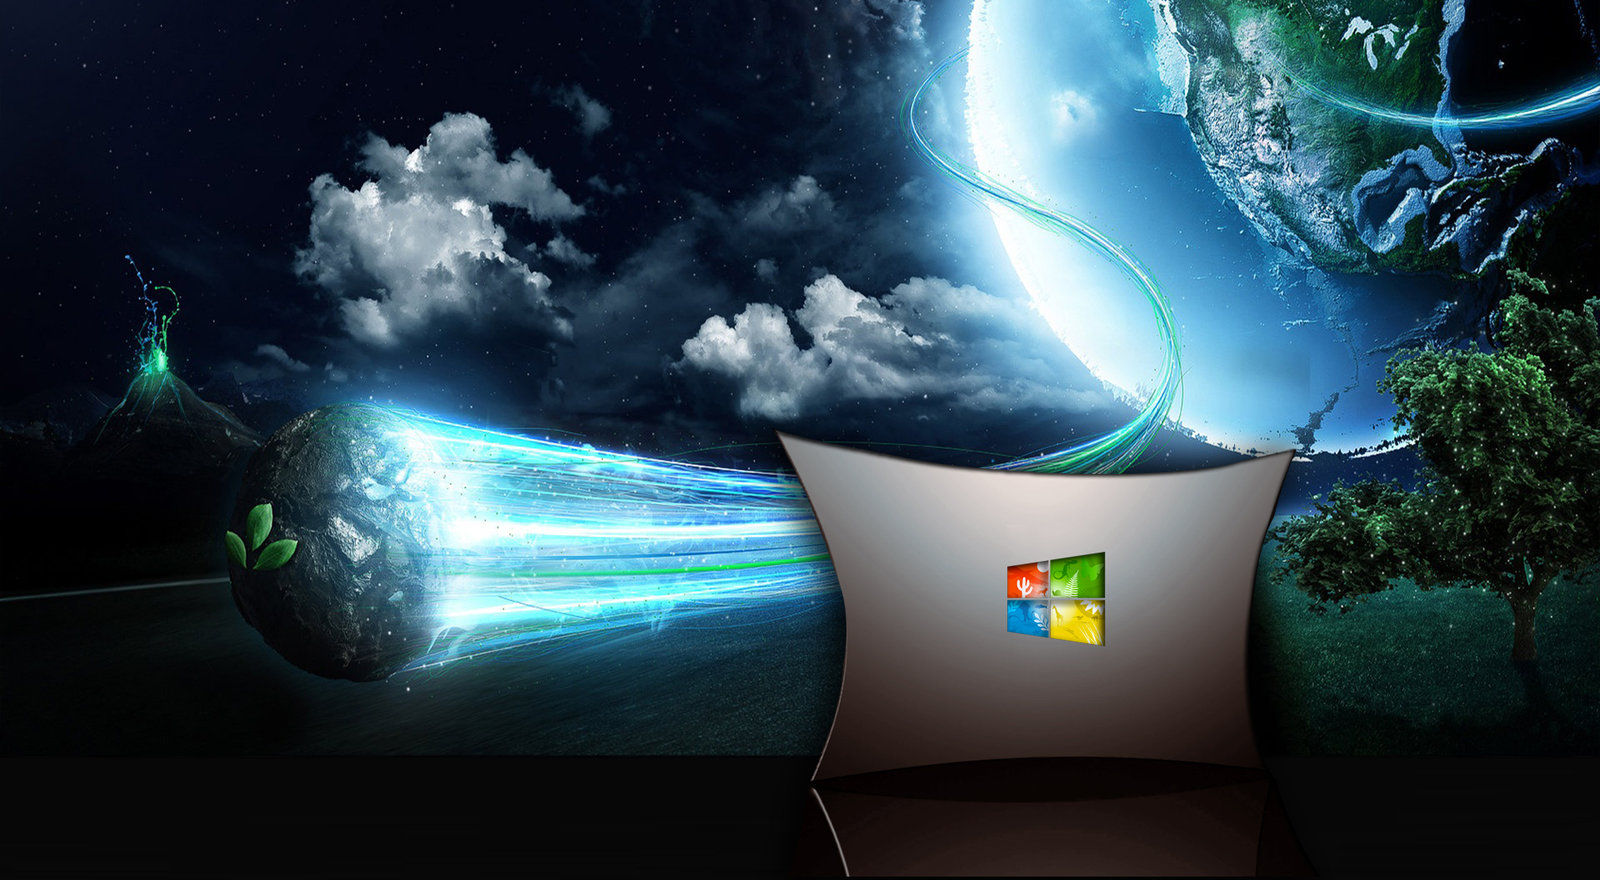 Windows 8 1 Wallpaper Downloads: HP Wallpapers For Windows 8.1